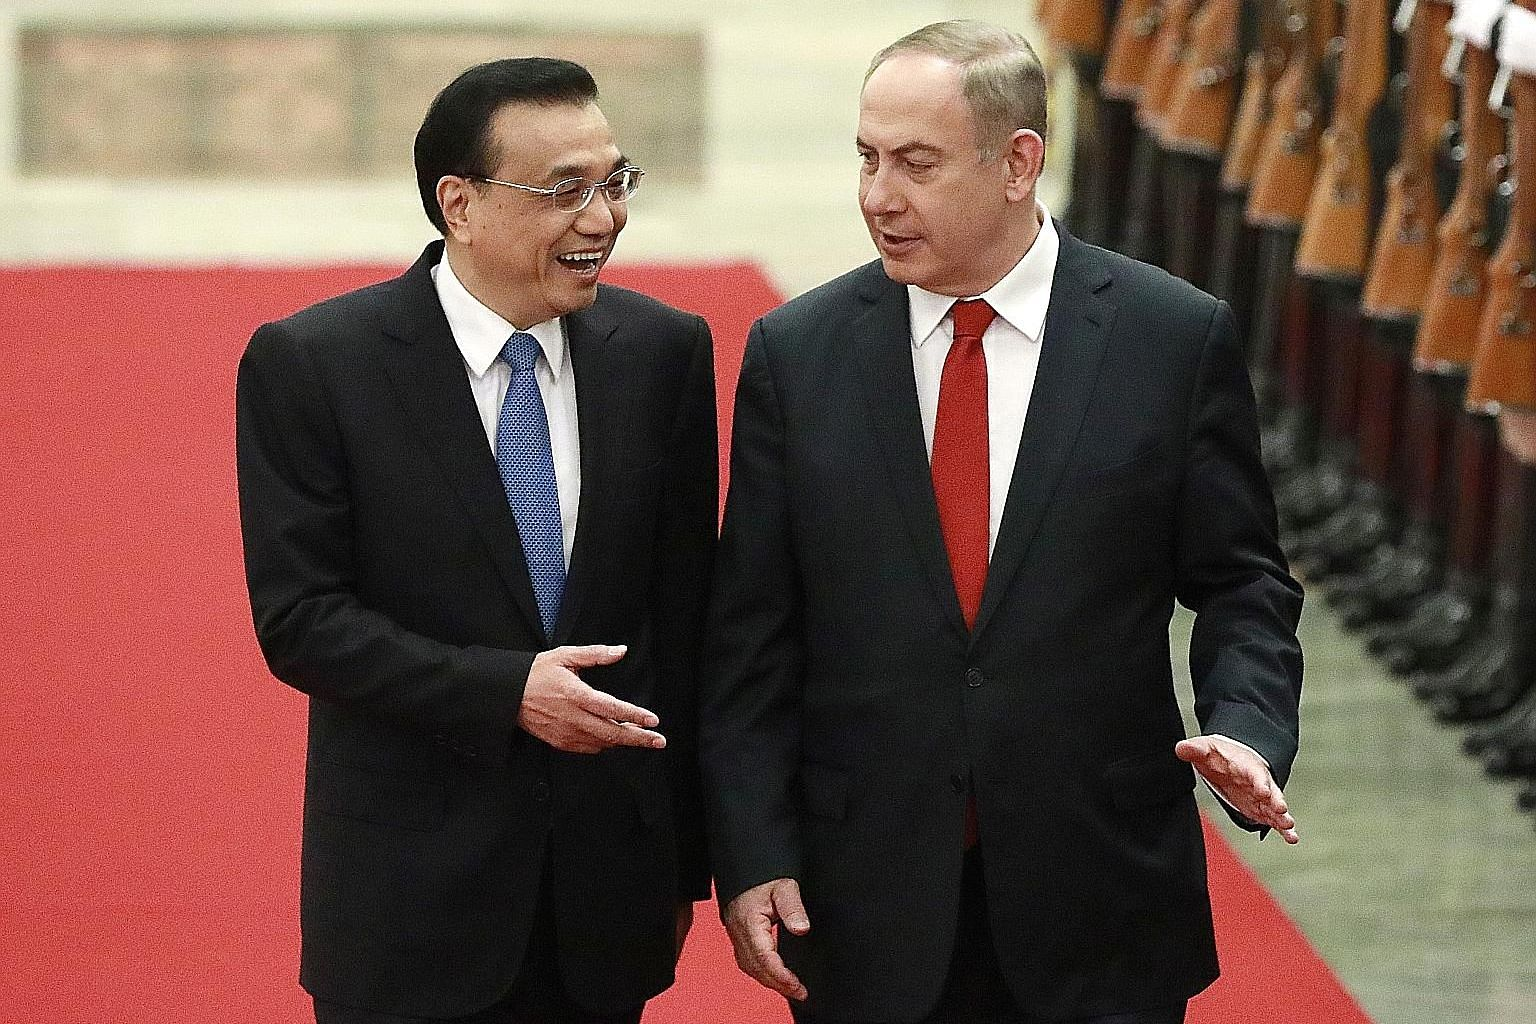 Chinese Premier Li Keqiang welcoming Israeli Prime Minister Benjamin Netanyahu to Beijing in 2017. The two countries are now growing closer and China has become the second most important trading partner for Israel after the US.